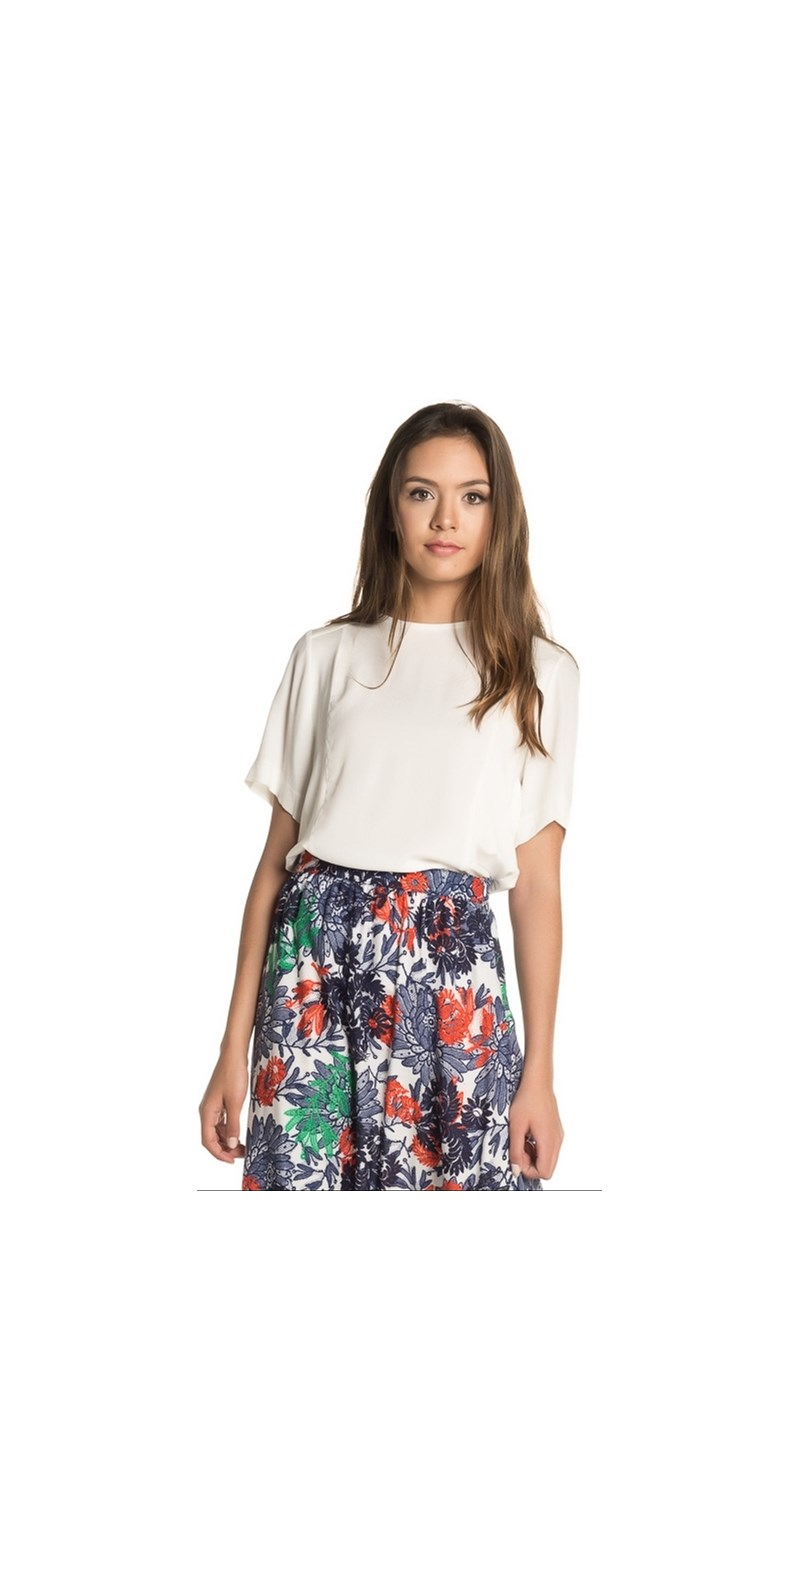 BLUSA BORDA BARROCA JASMINE - OFF WHITE